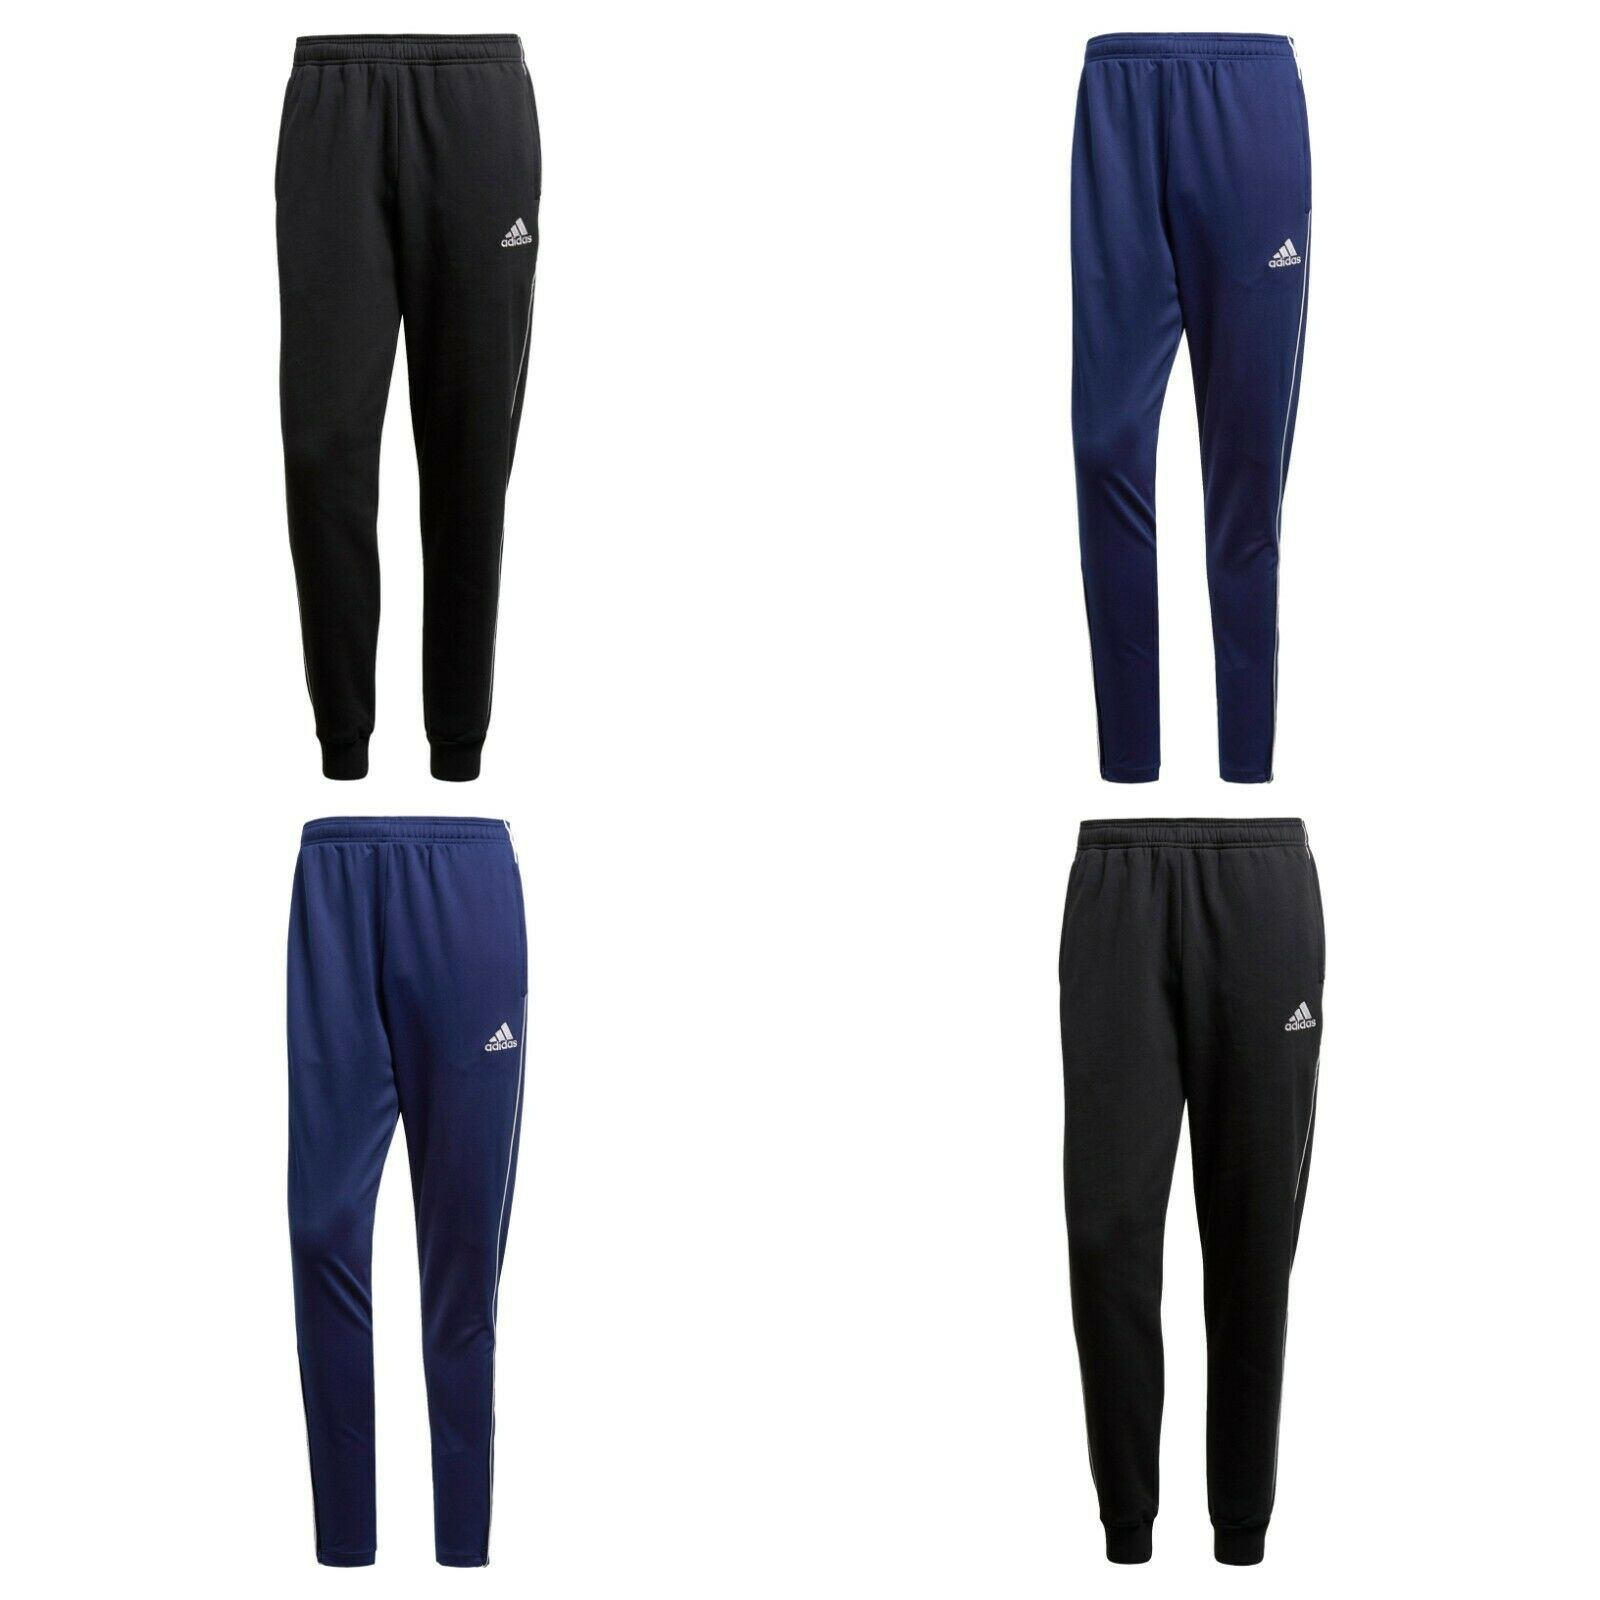 Adidas Mens Core 18 Joggers Tracksuit Bottoms Trouser Sports Running Sweat Pant